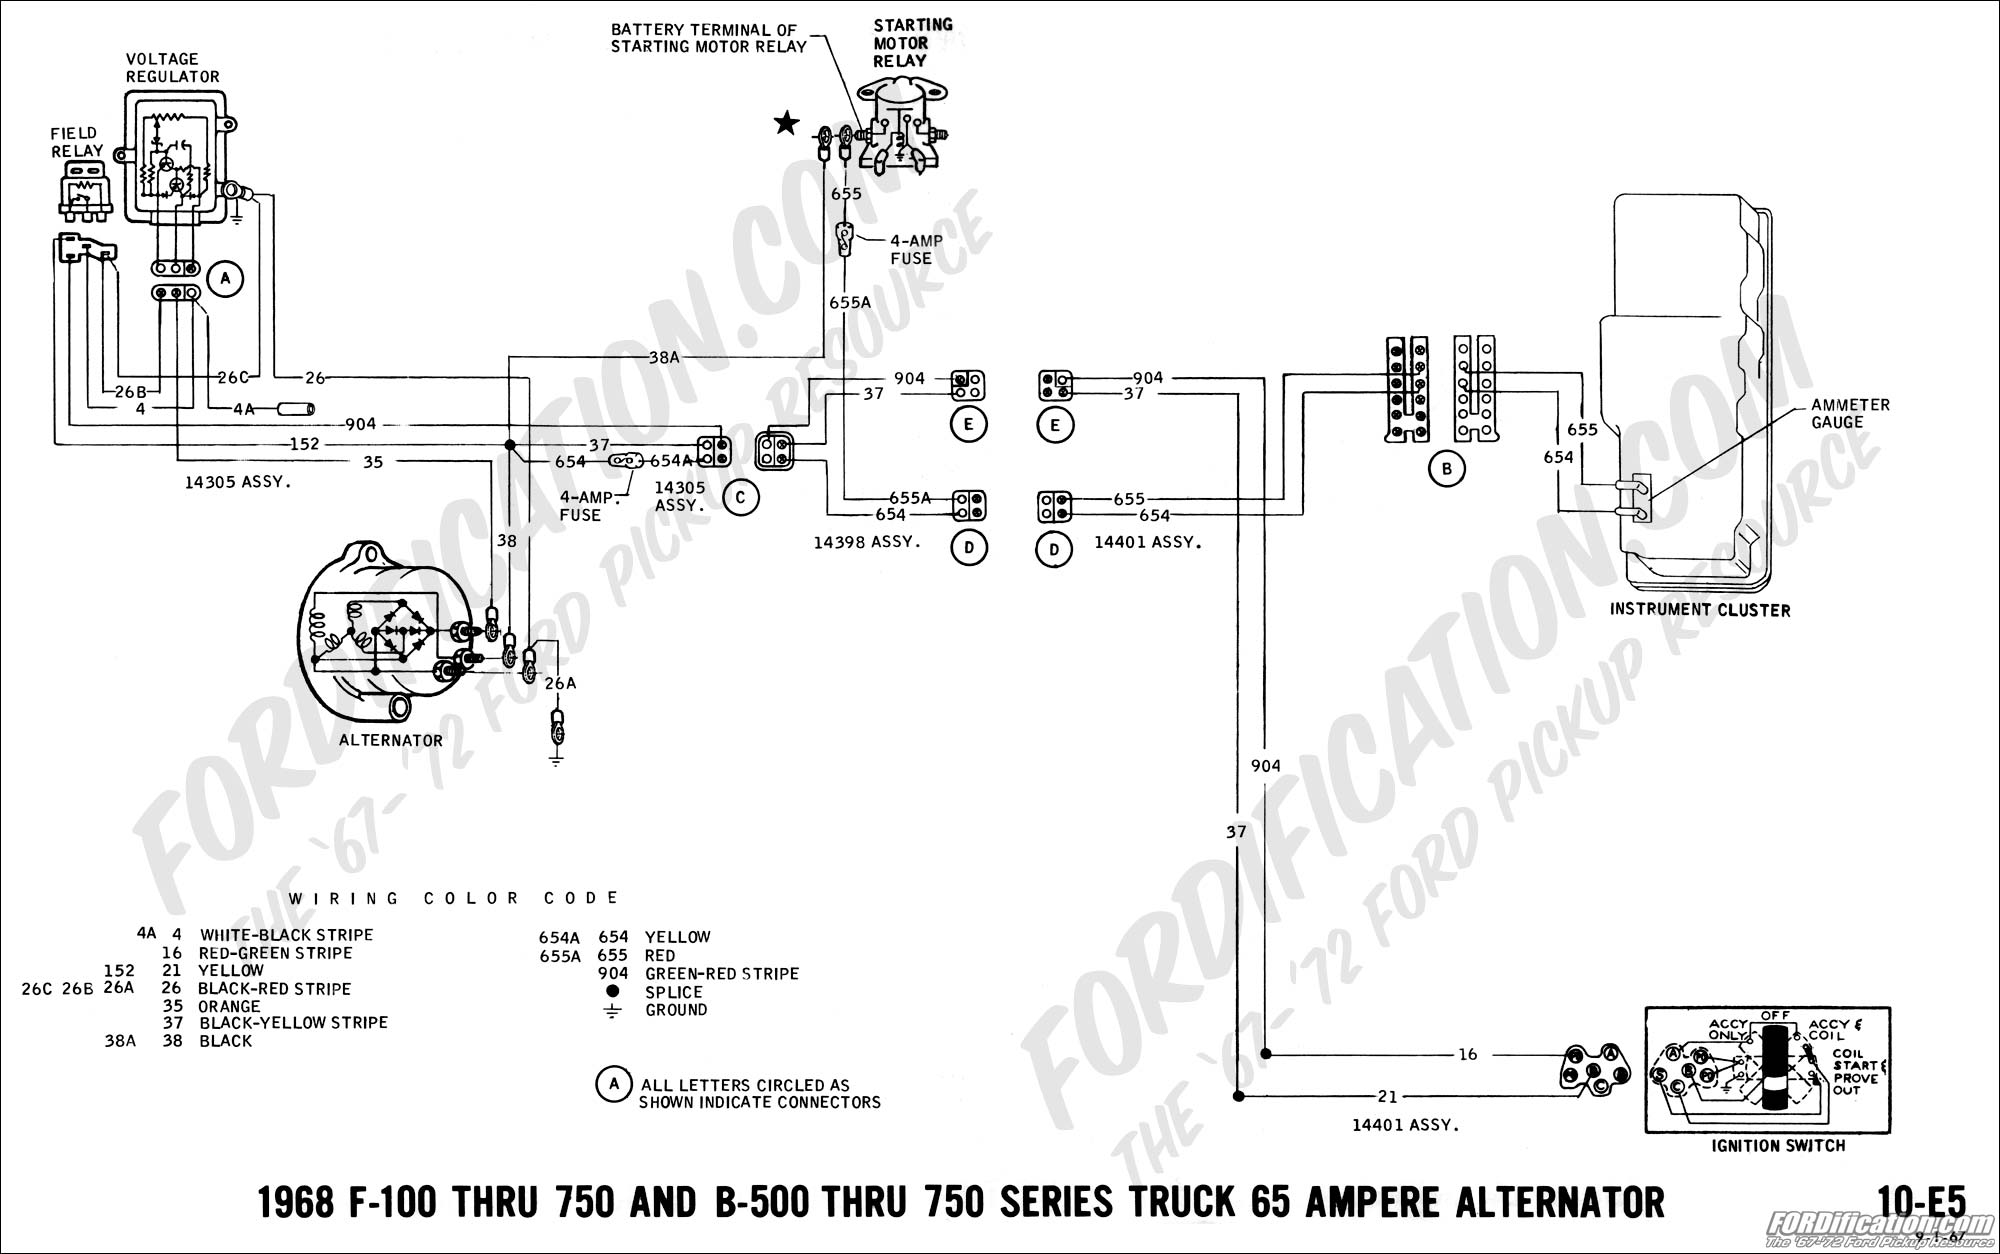 68 07 ford truck technical drawings and schematics section h wiring 1969 Ford Mustang Wiring Diagram at bayanpartner.co